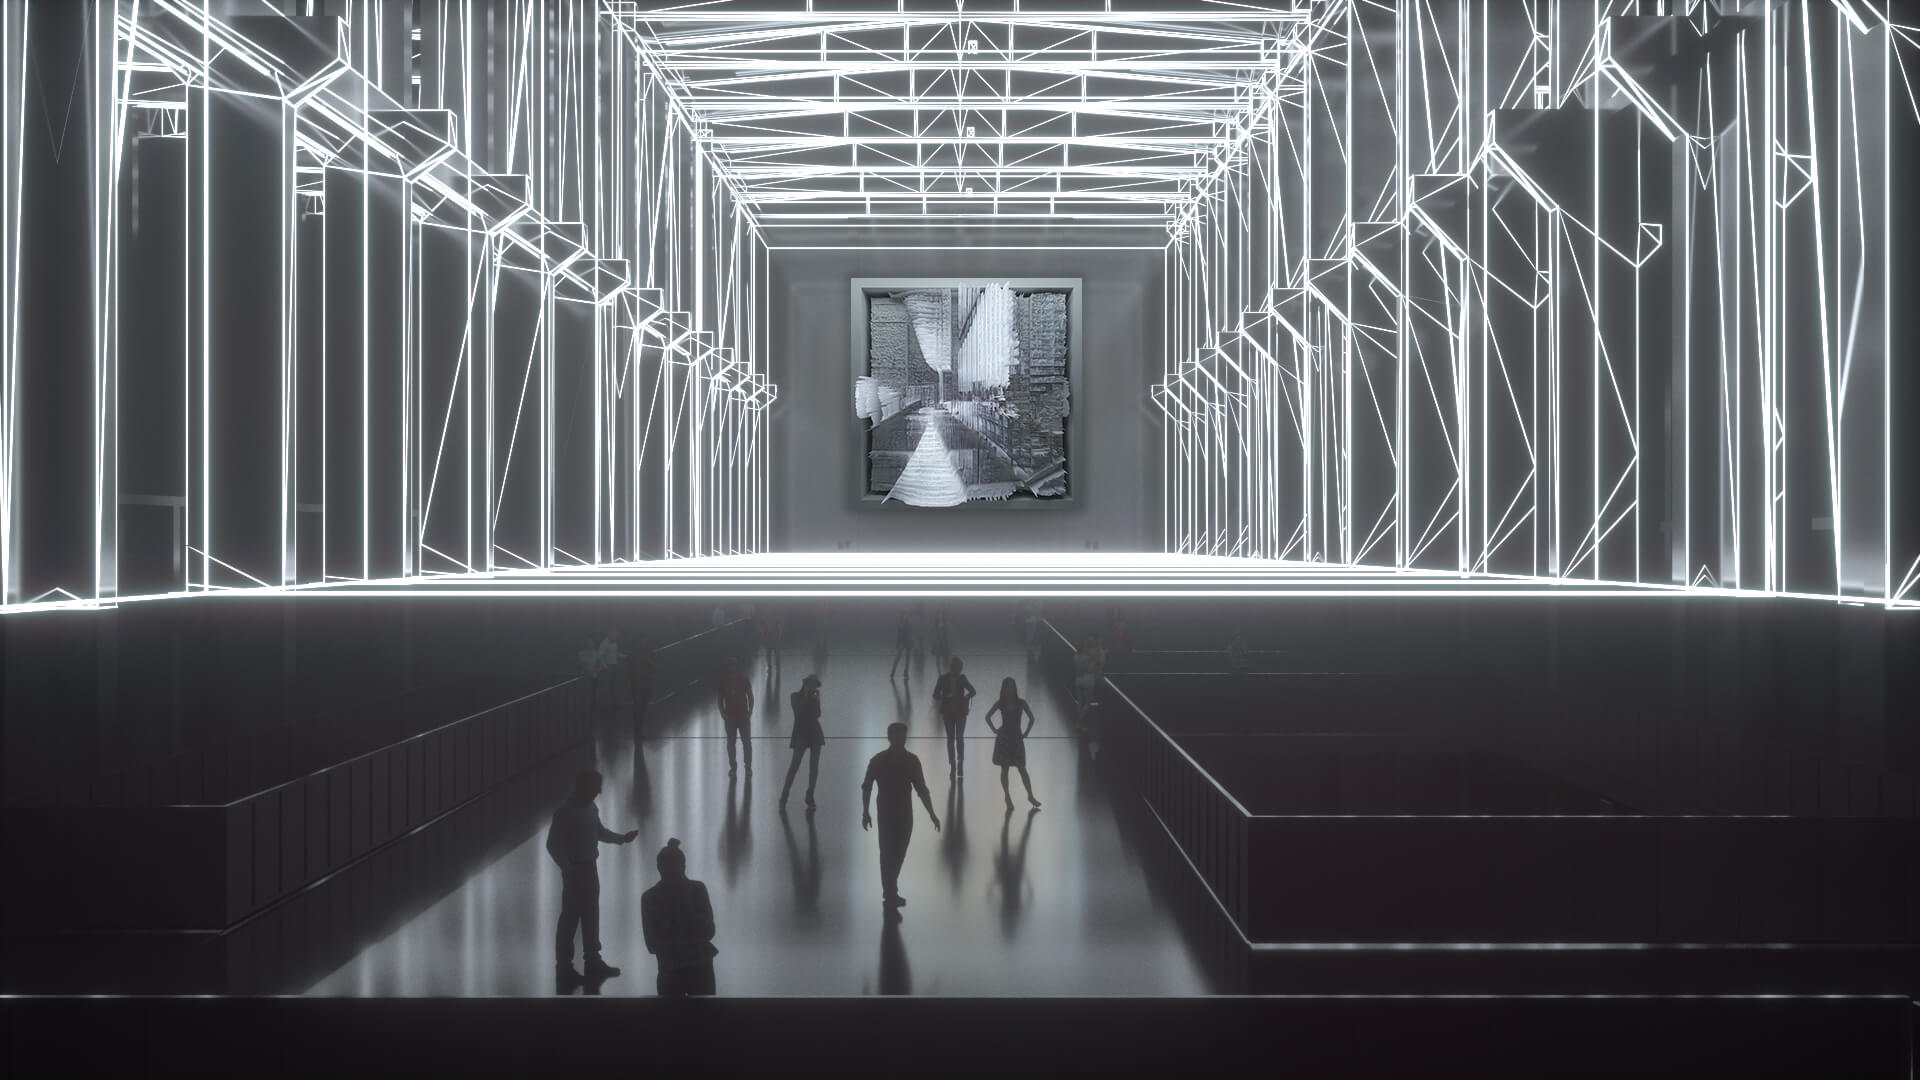 Latent Being, an immersive audiovisual installation by Refik Anadol | Latent Being | Refik Anadol | STIRworld